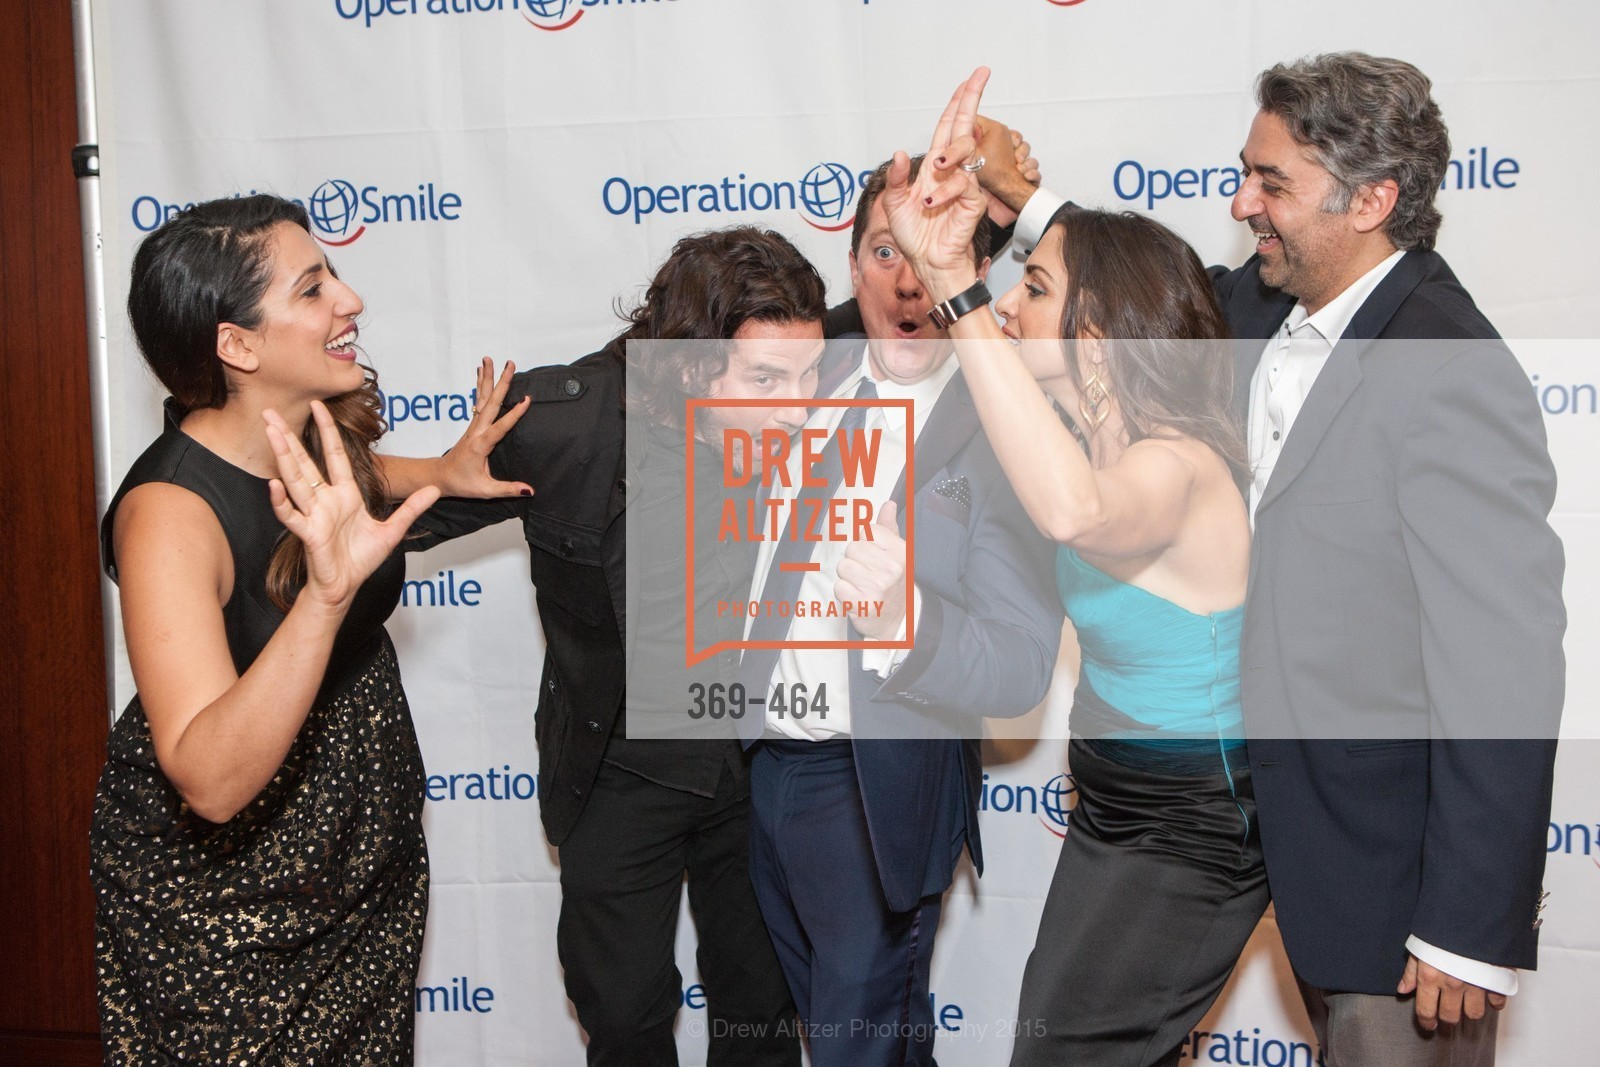 Sara Agah Franti, Matt Nathanson, Liam Mayclem, Shirin Aryanpour, Hooman Khalili, Operation Smile Presents THE SAN FRANCISCO 2015 SMILE GALA, InterContinental Hotel, November 7th, 2015,Drew Altizer, Drew Altizer Photography, full-service agency, private events, San Francisco photographer, photographer california